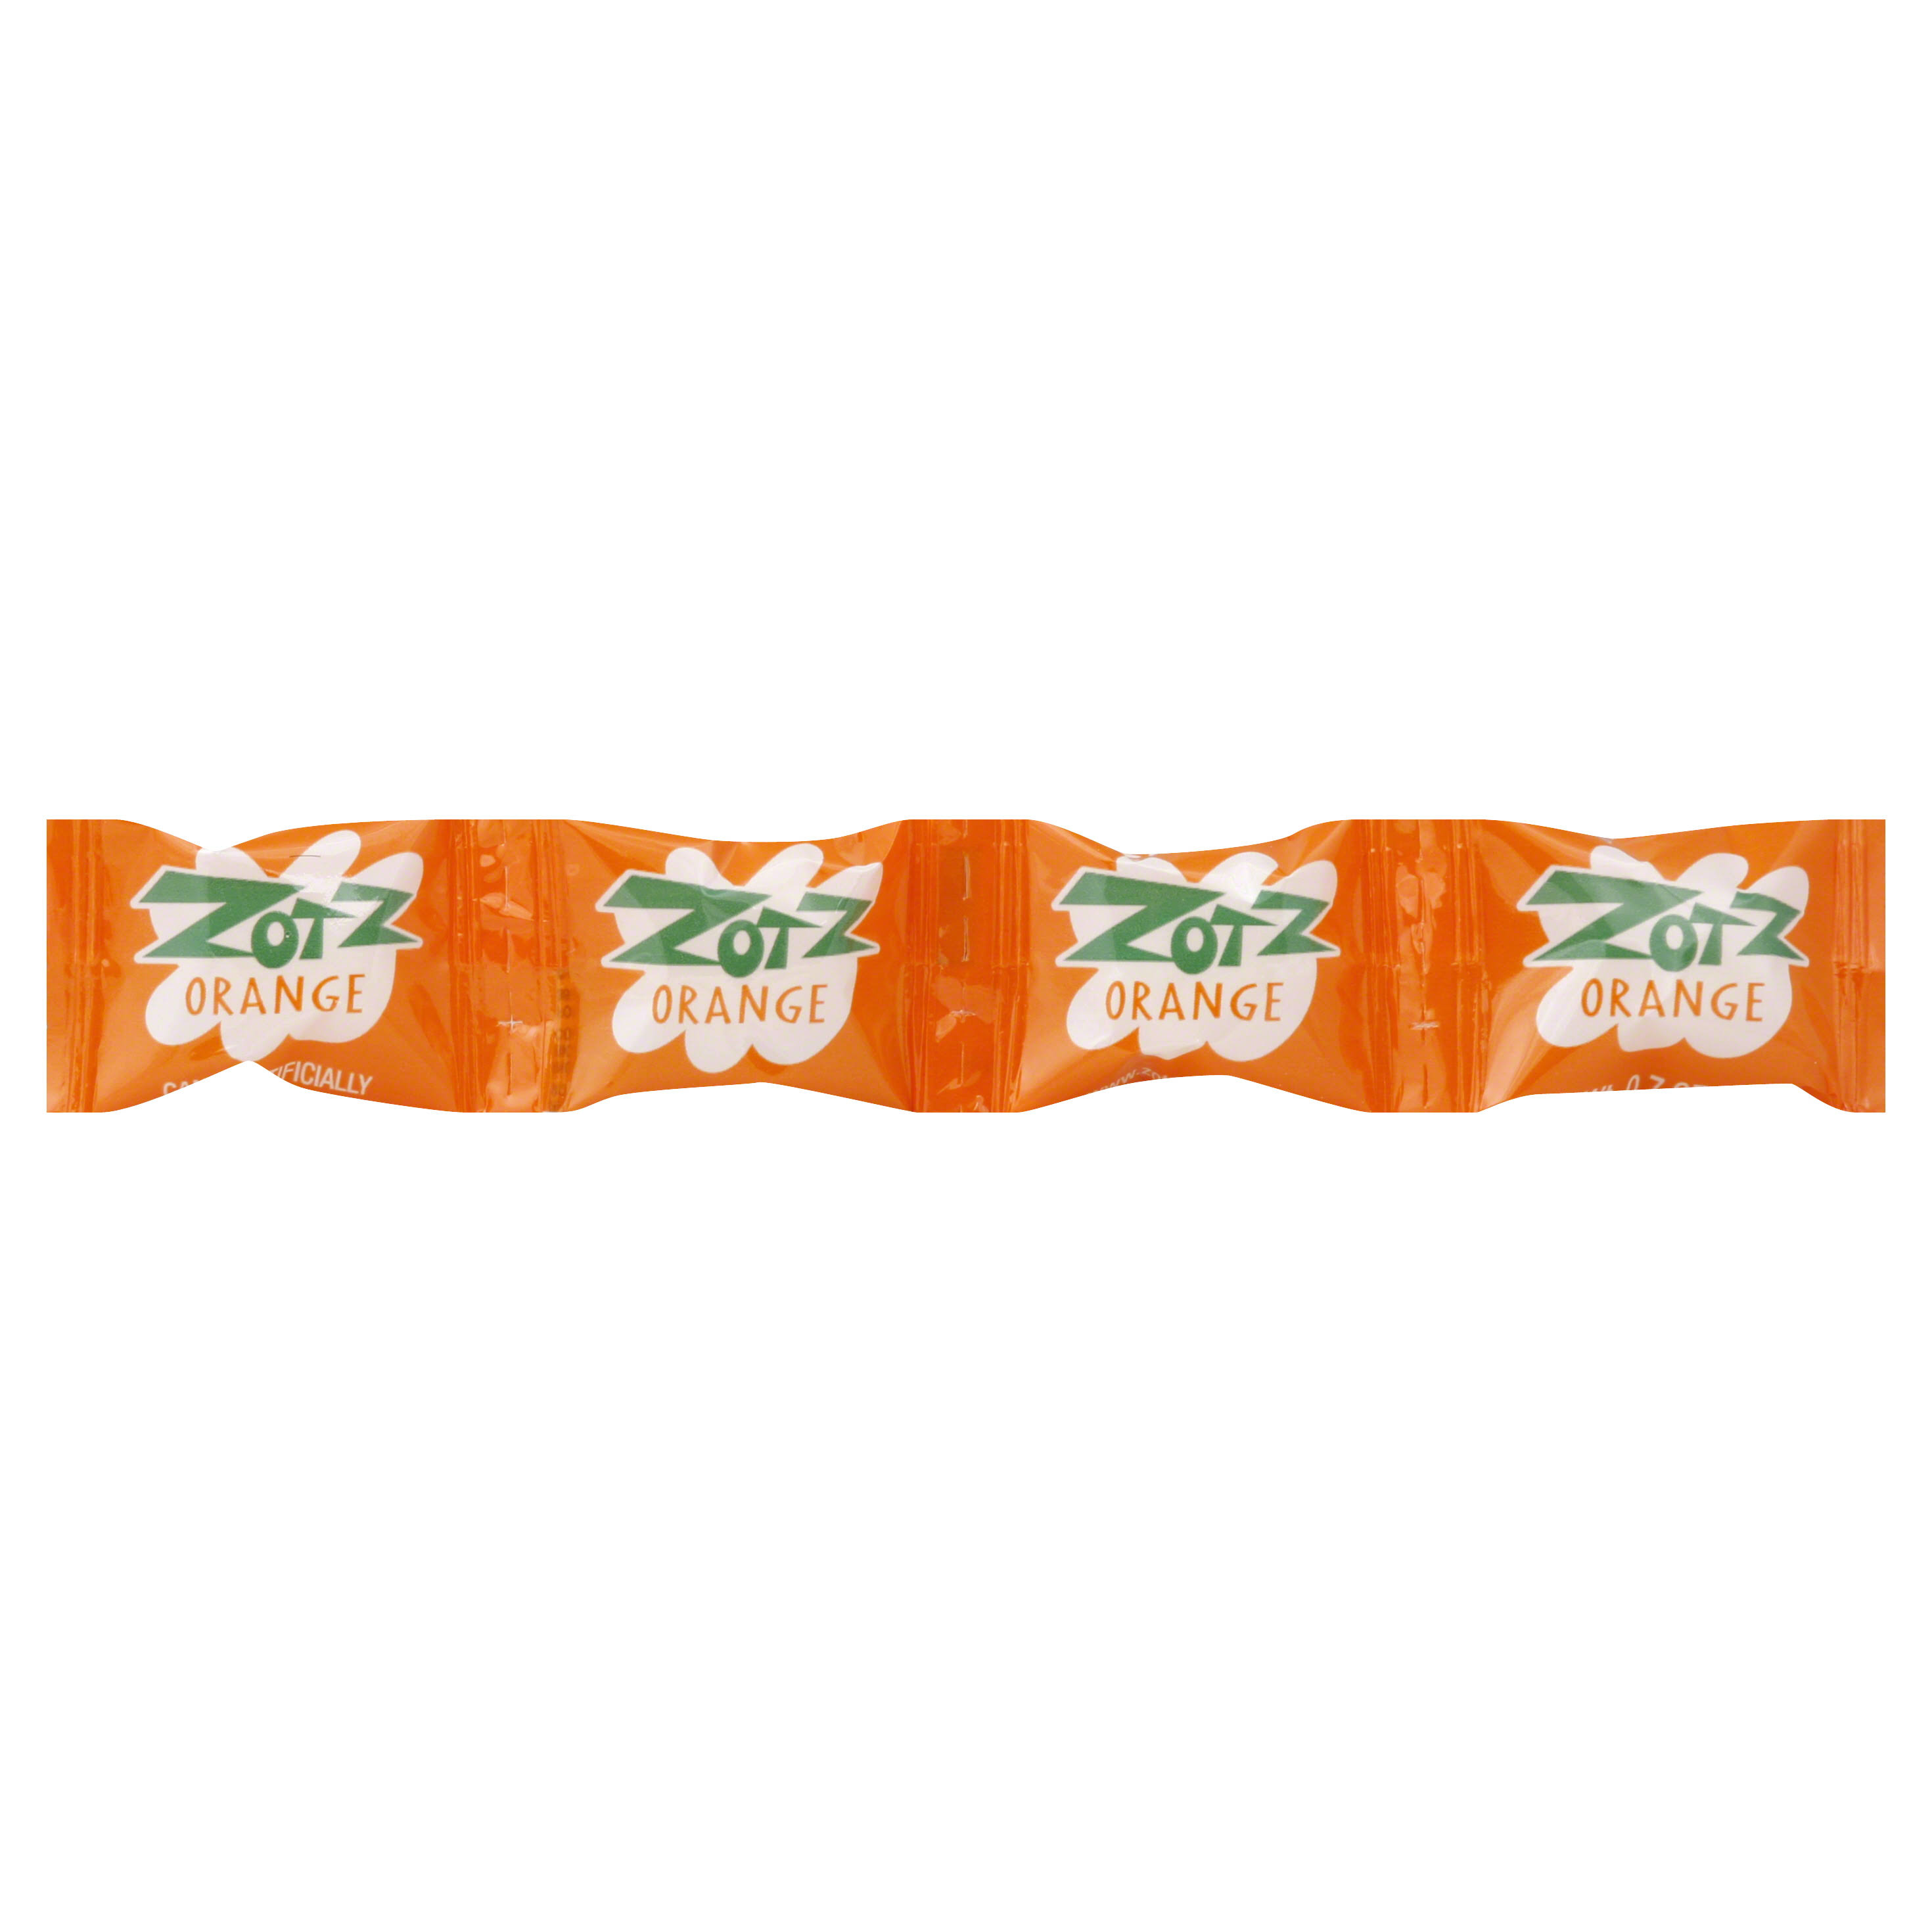 Zotz Candy, Orange - 4 pack, 0.7 oz pieces